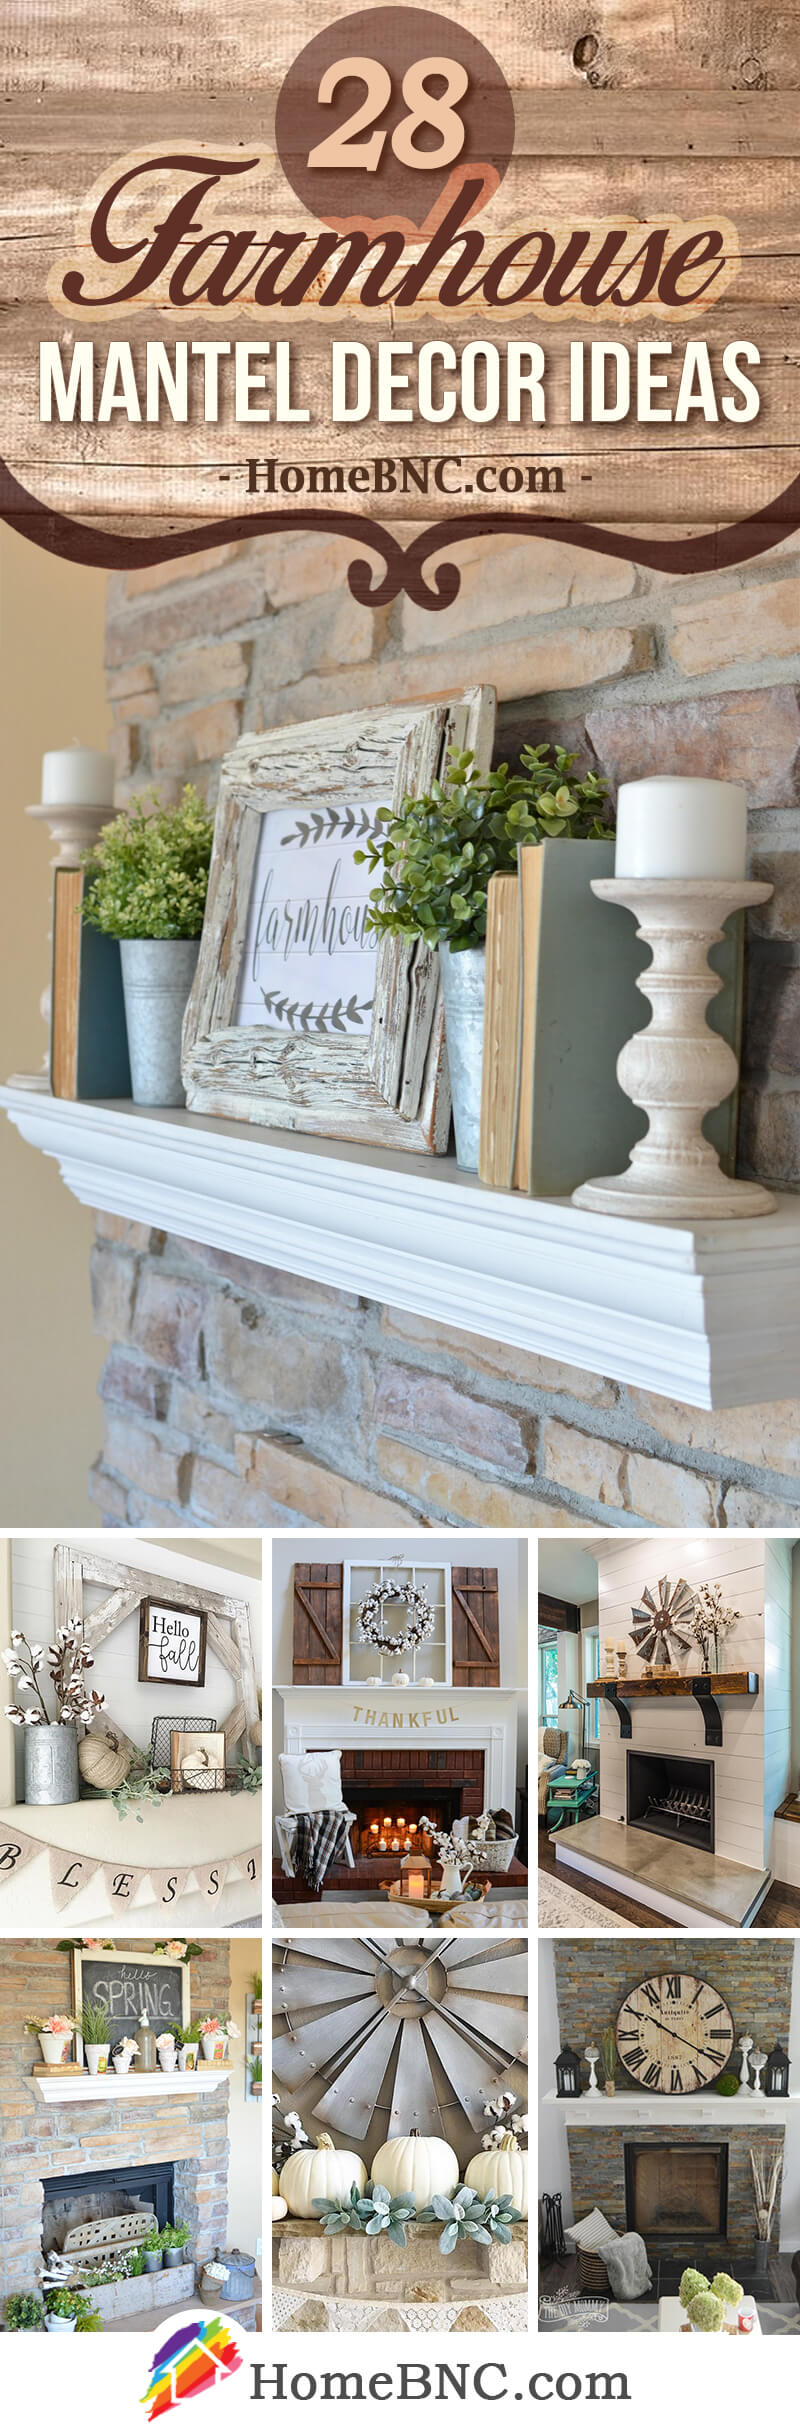 28 Stylish Farmhouse Mantel Decor Ideas For Rustic Interiors